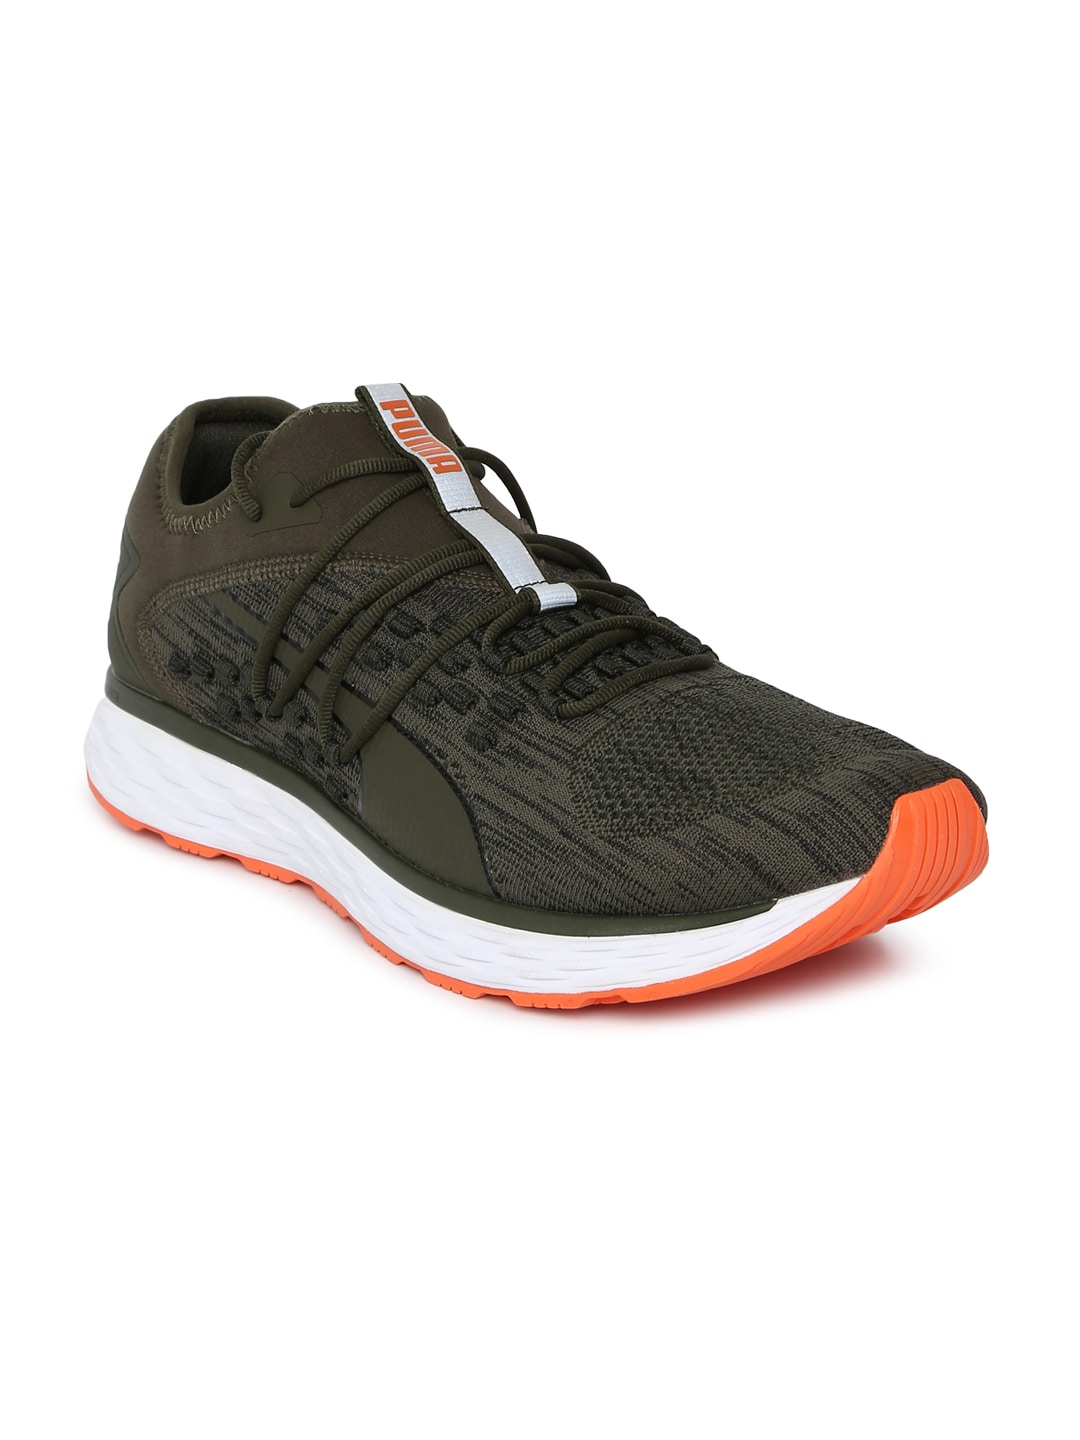 758266f5d90ac7 Puma Sports Shoes